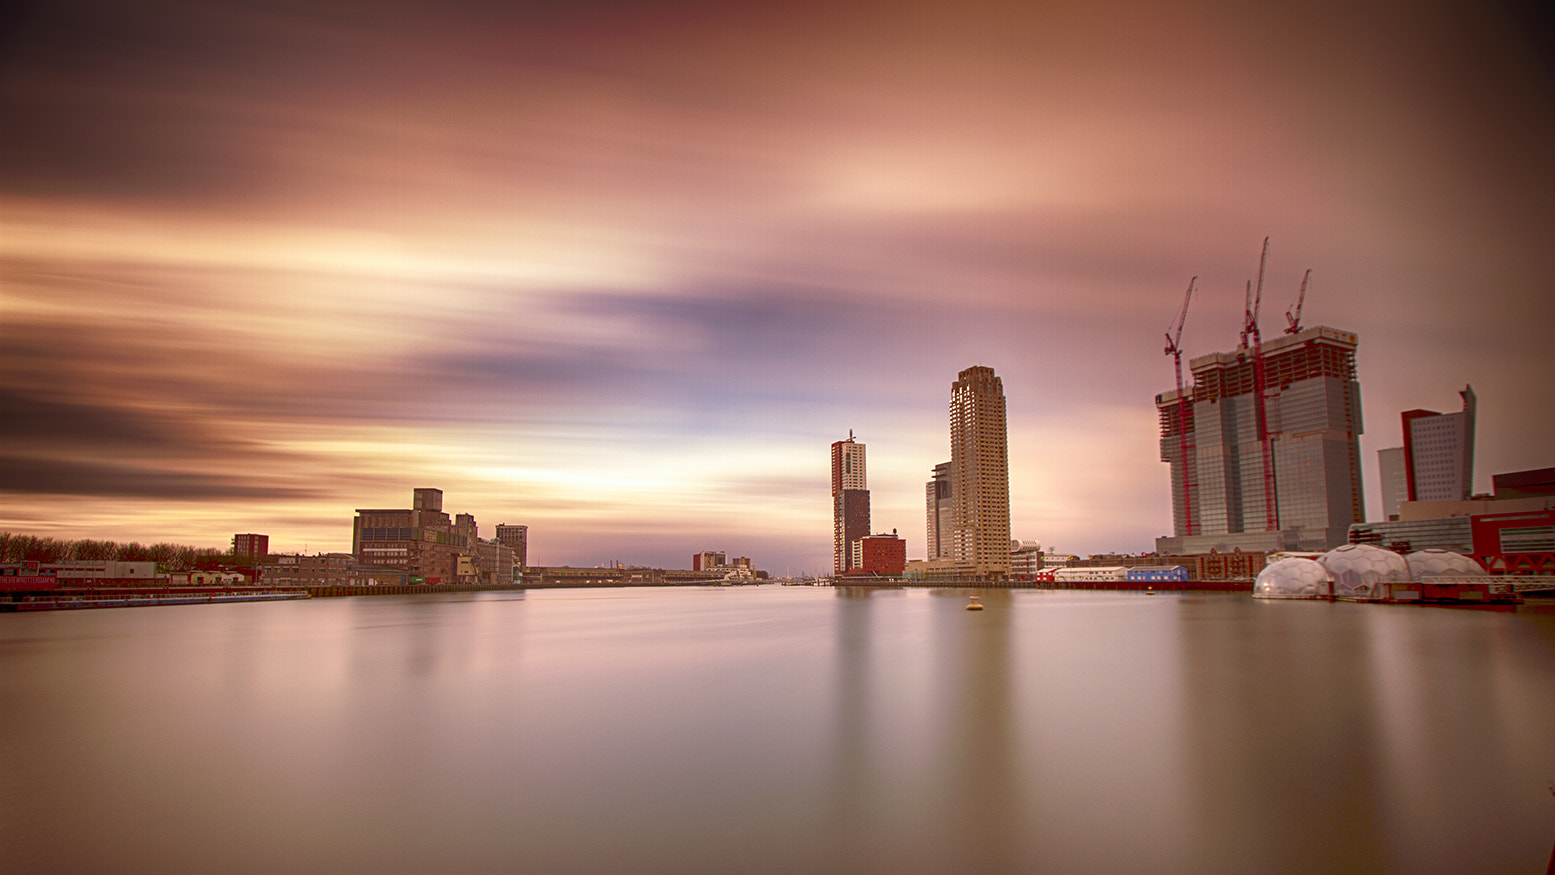 Photograph Rotterdam by Kees Smans on 500px